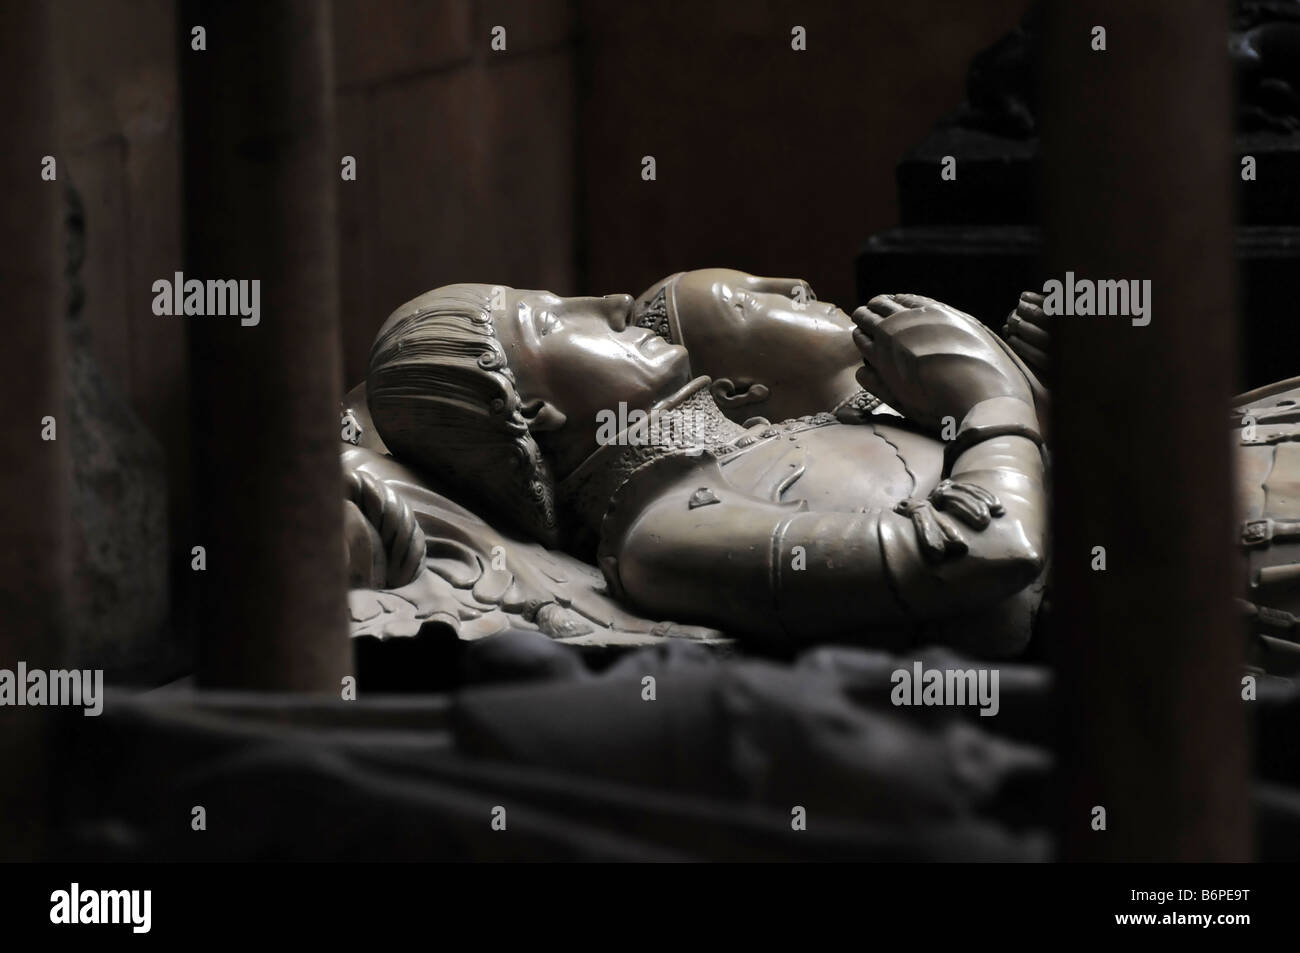 15th century Alabaster effigies of Sir Ralph Fitzherbert and his wife Elizabeth in Norbury Church, Derbyshire, England. - Stock Image